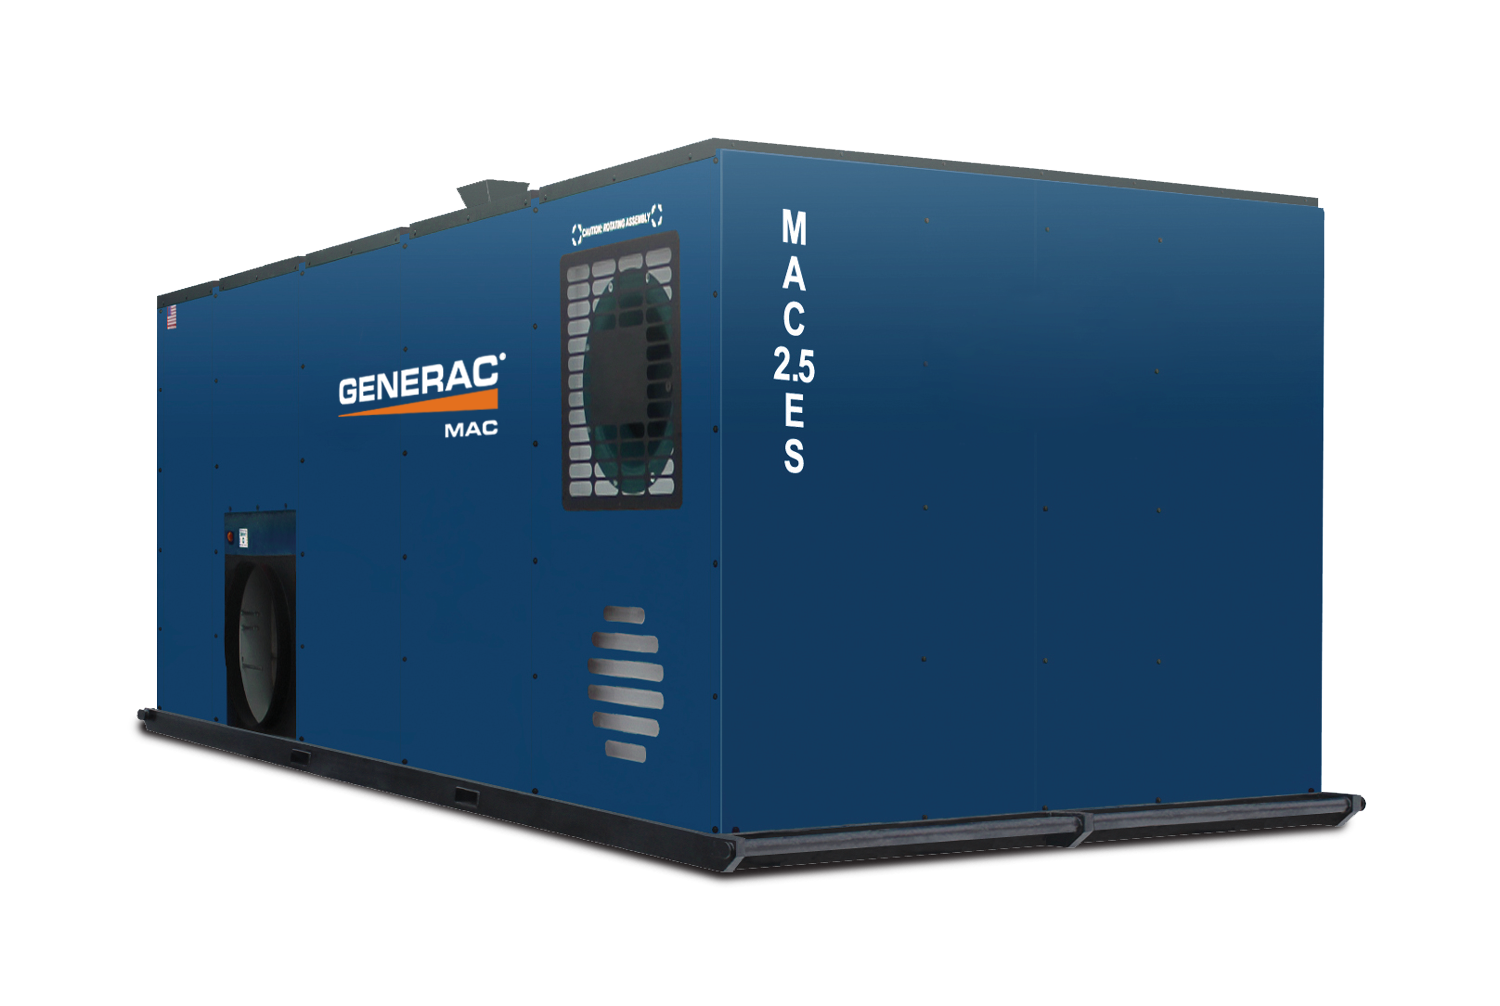 generac mac2.5es mobile indirect fired heater